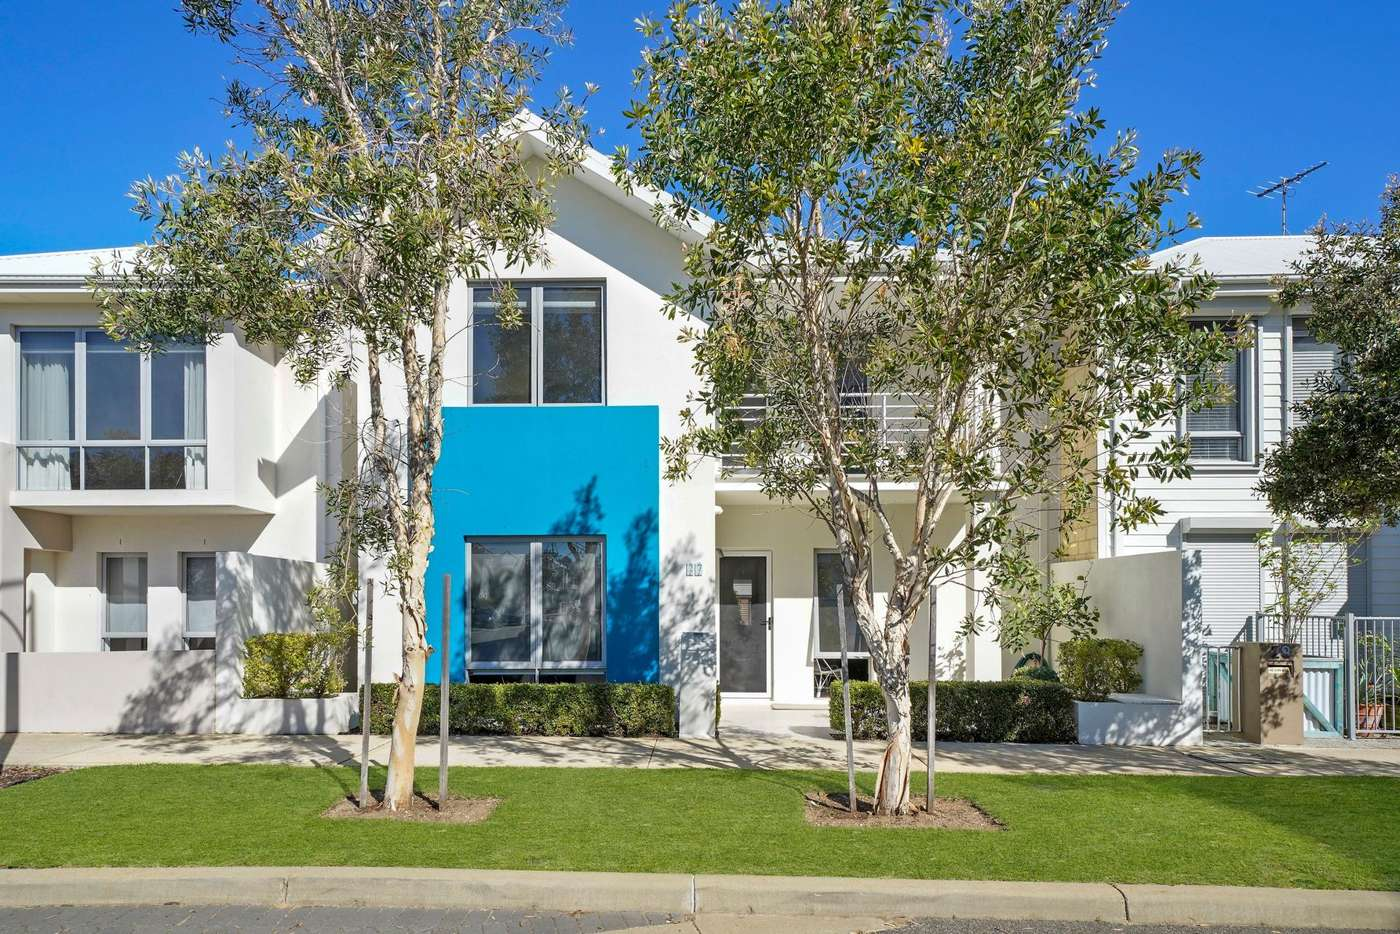 Main view of Homely house listing, 27 Shoalwater Street, North Coogee WA 6163